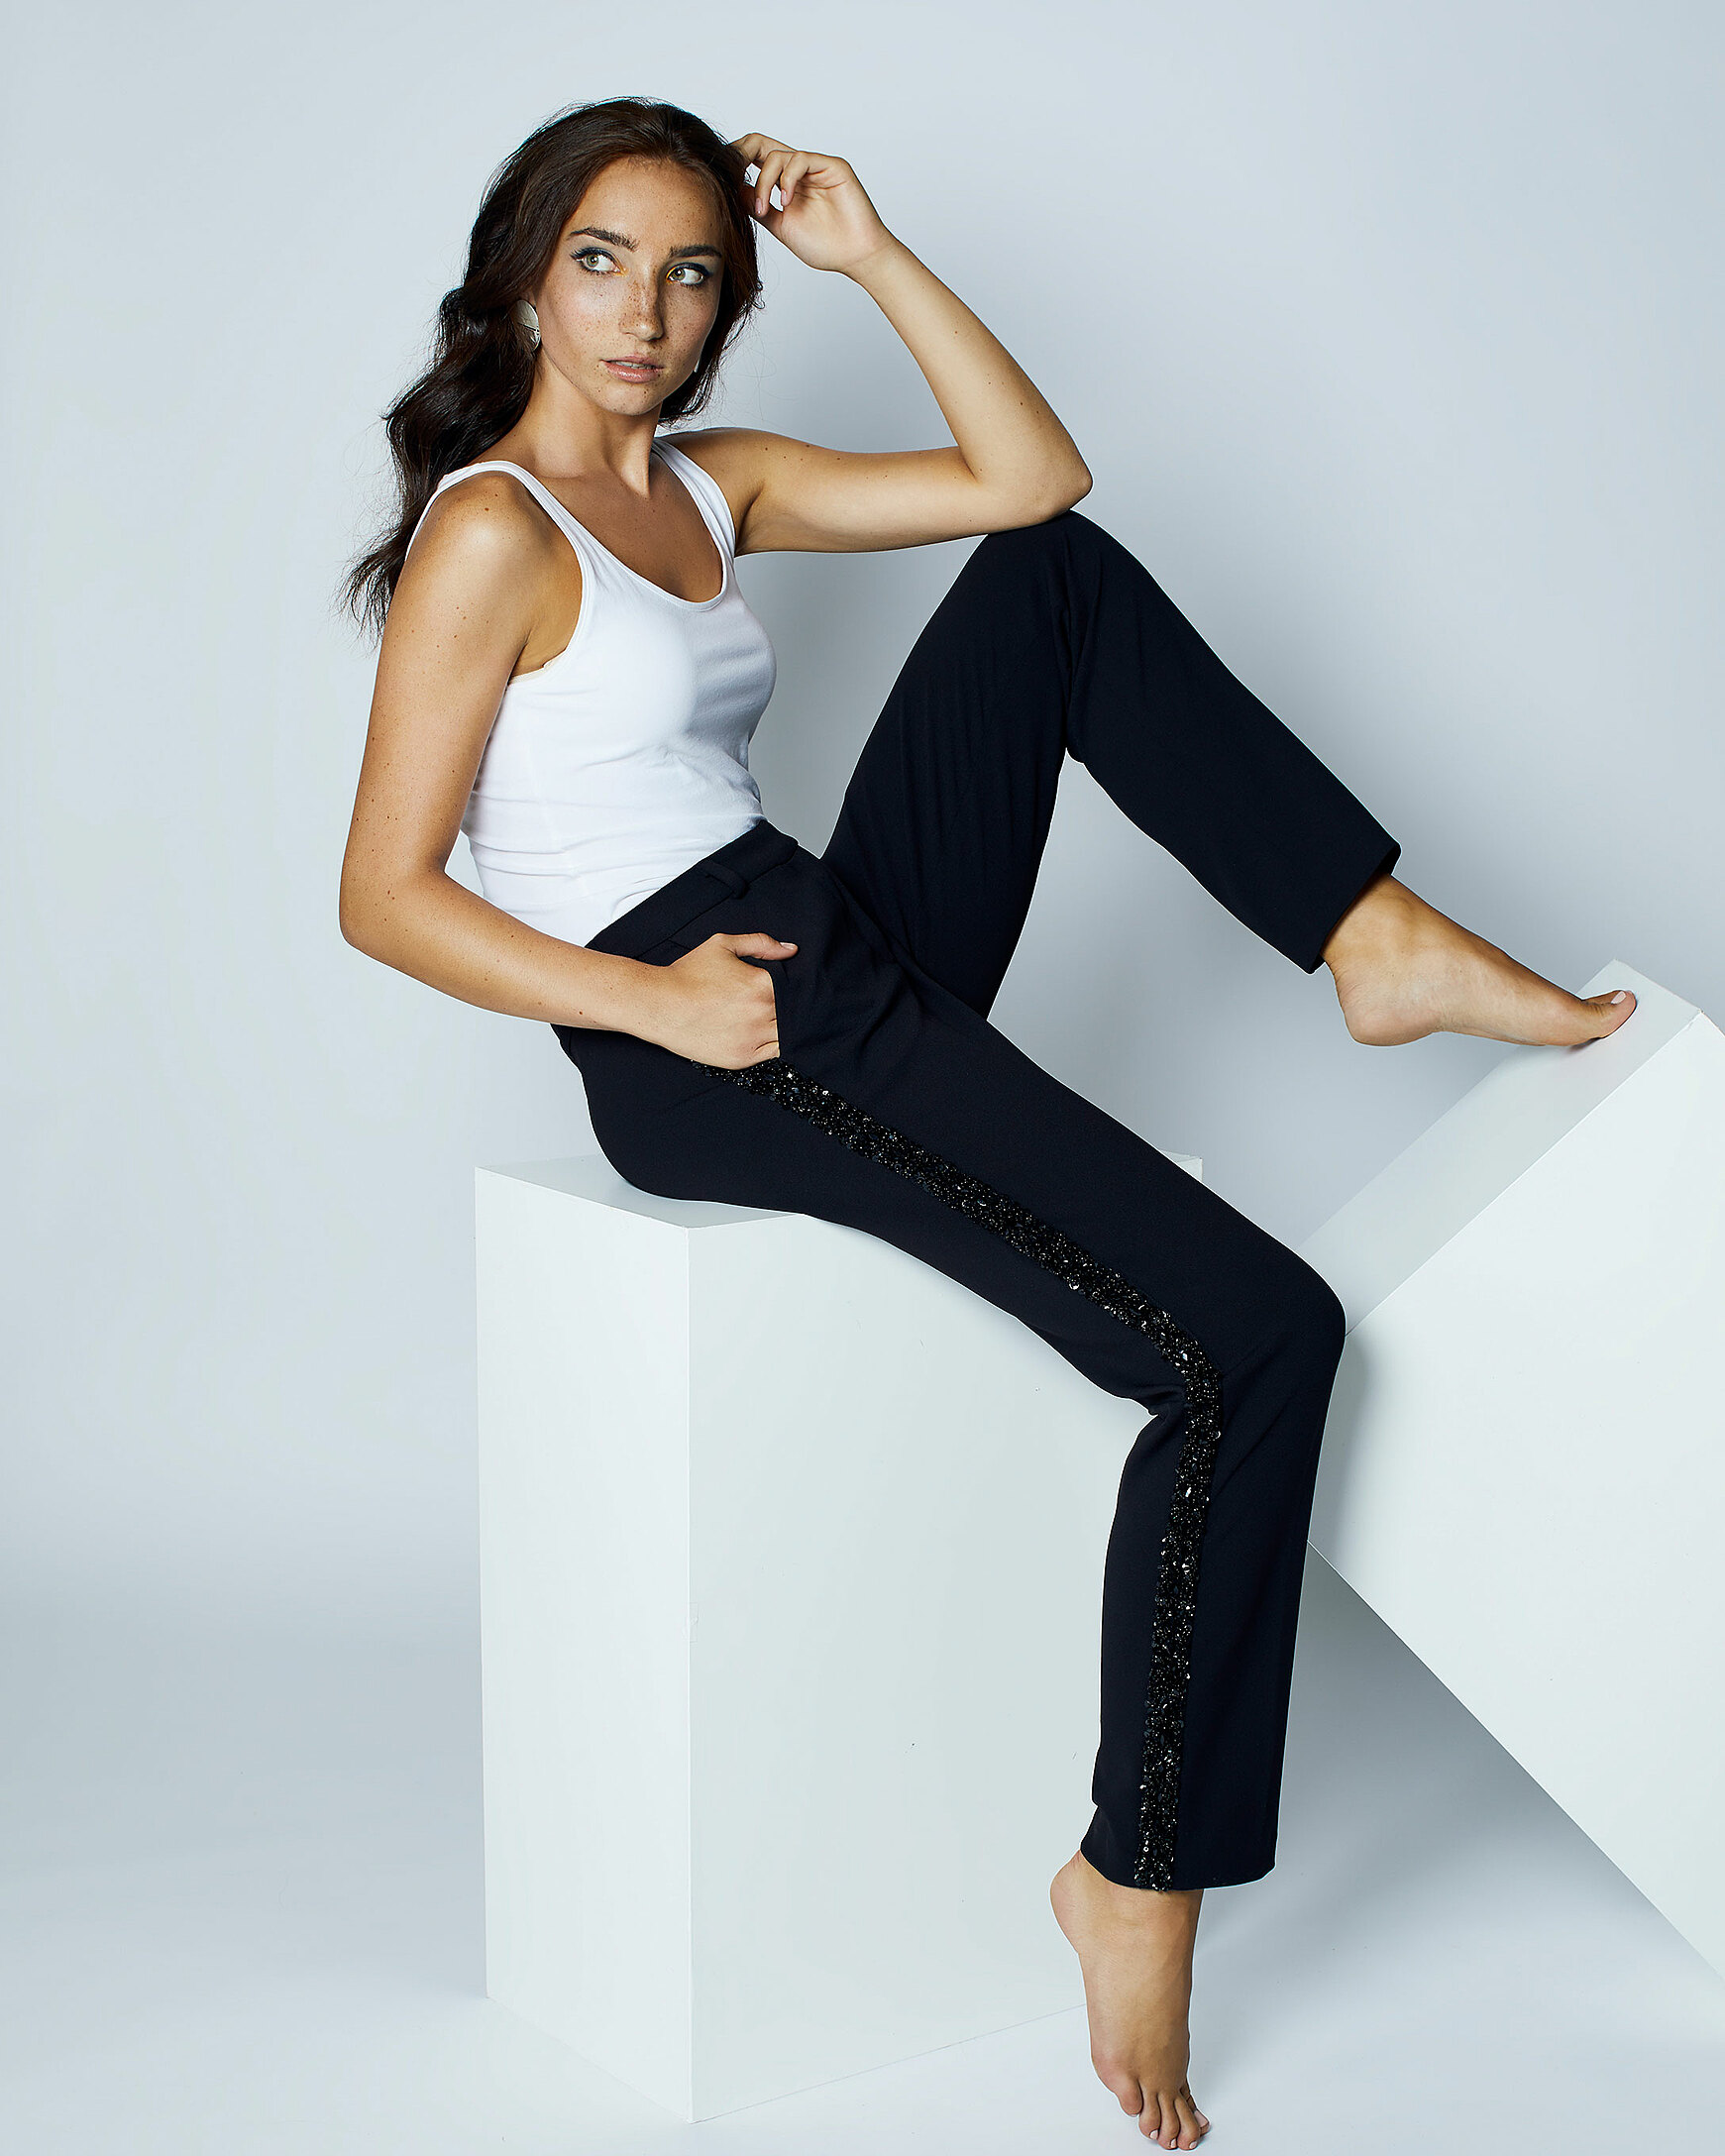 A brown hair model with a freckles face who wears a white top and black trousers with nacked feet